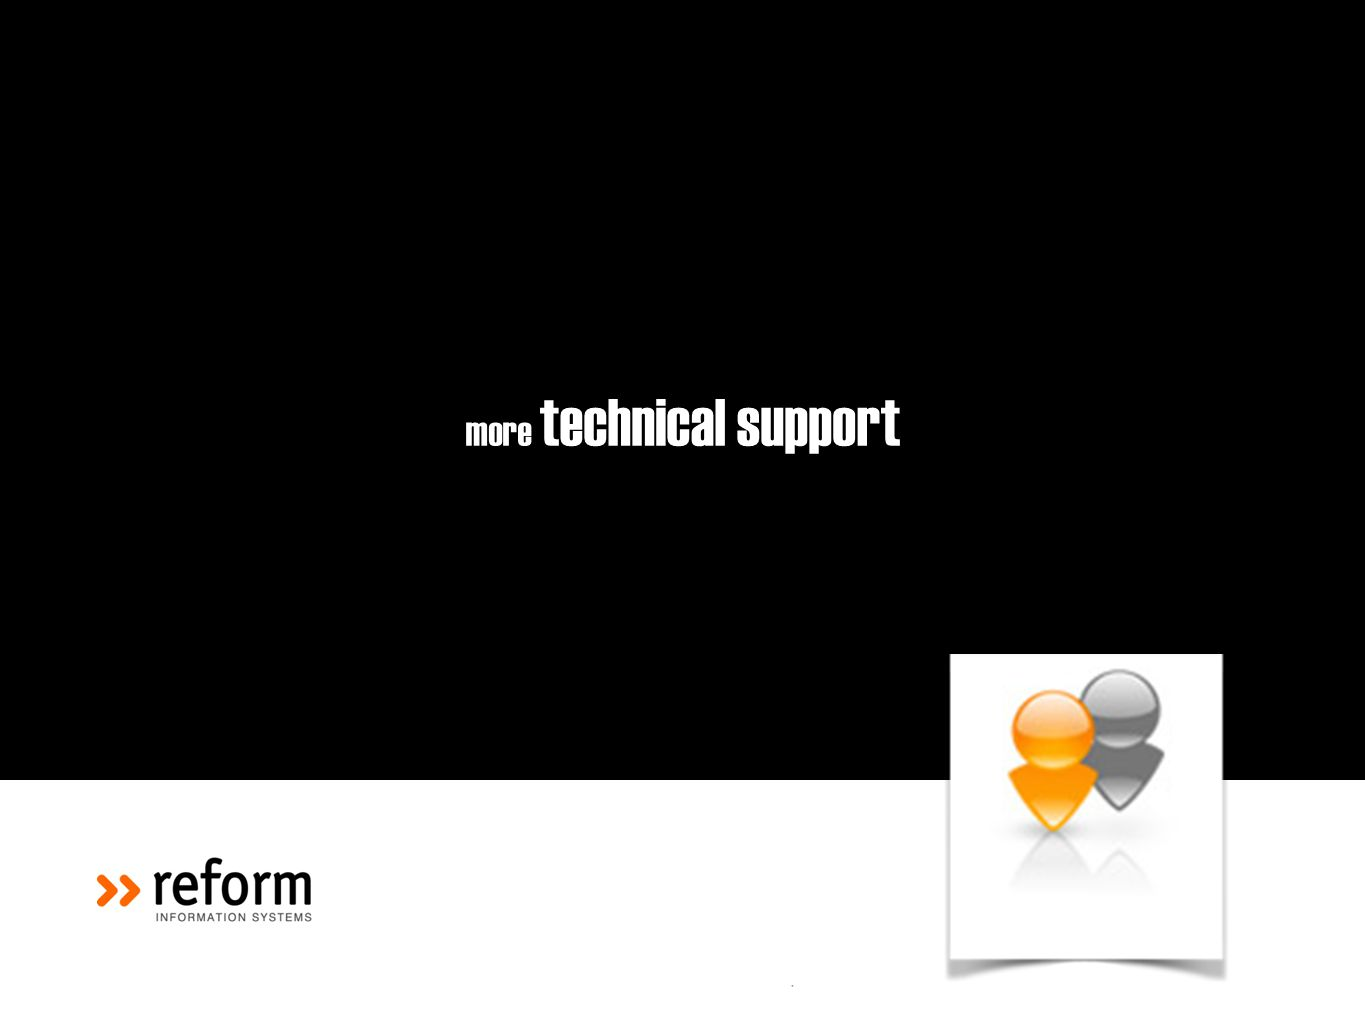 more technical support